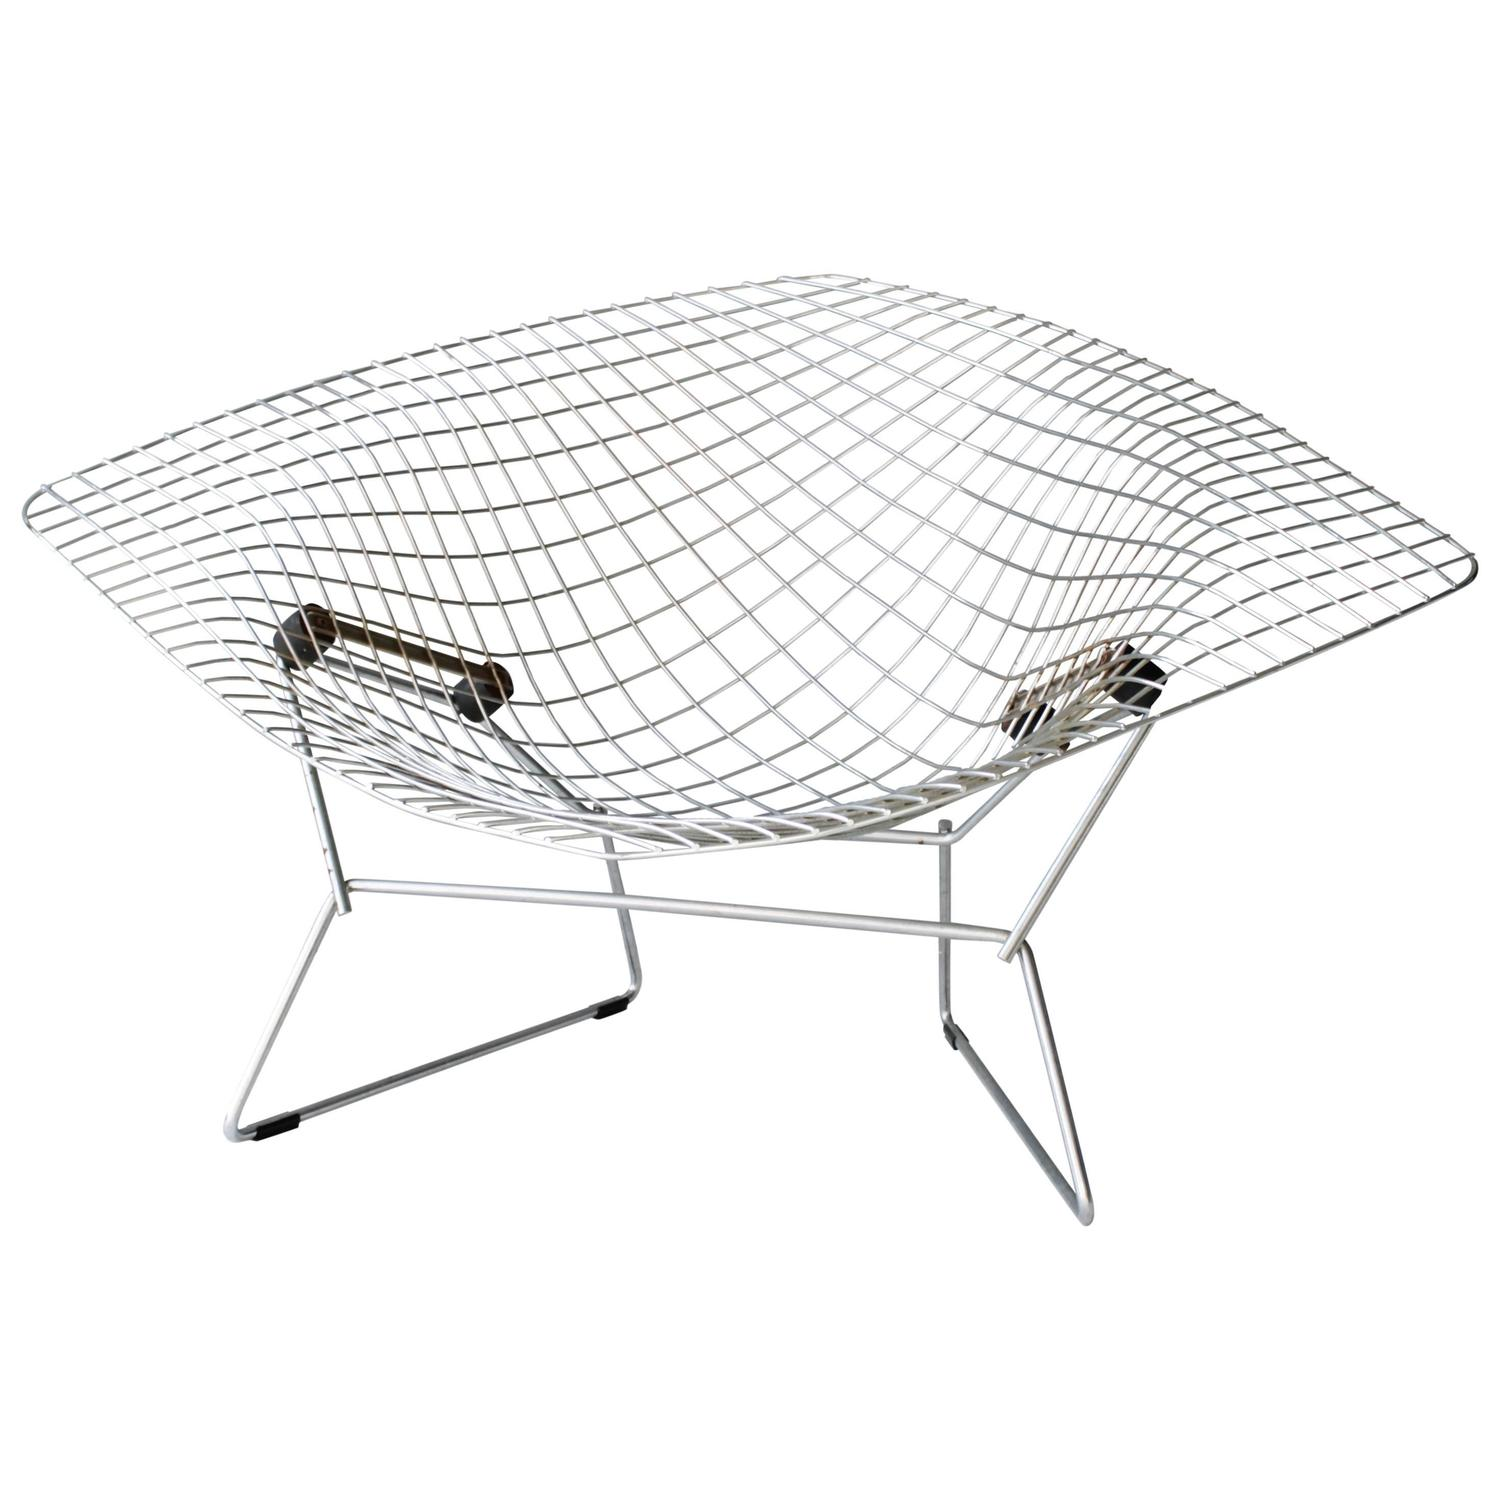 Bertoia diamond chair dimensions - Bertoia Diamond Chair Dimensions